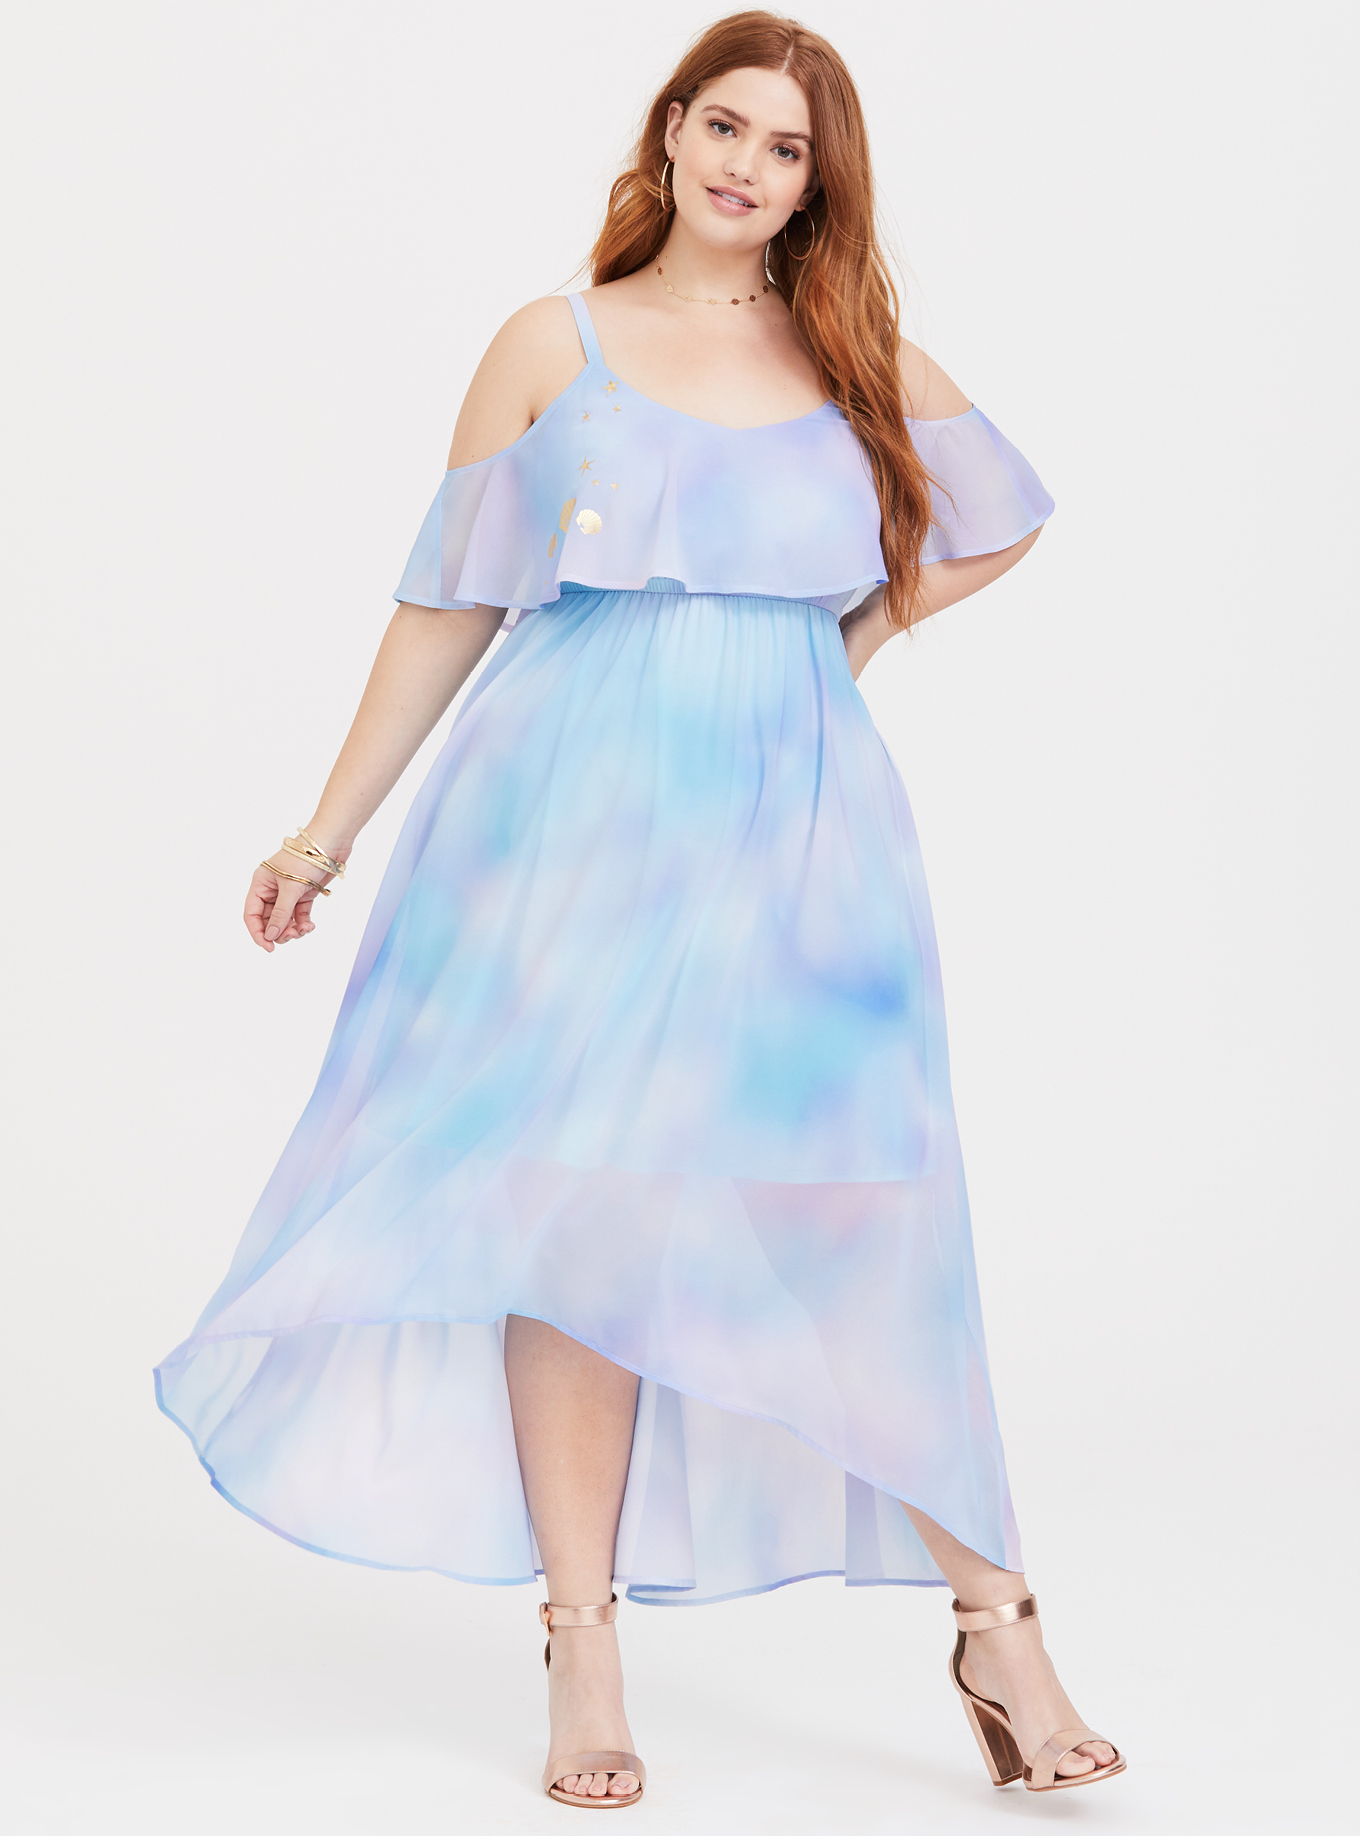 09e6110c3b52 Torrid Launches The Little Mermaid Plus Size Clothing Collection ...